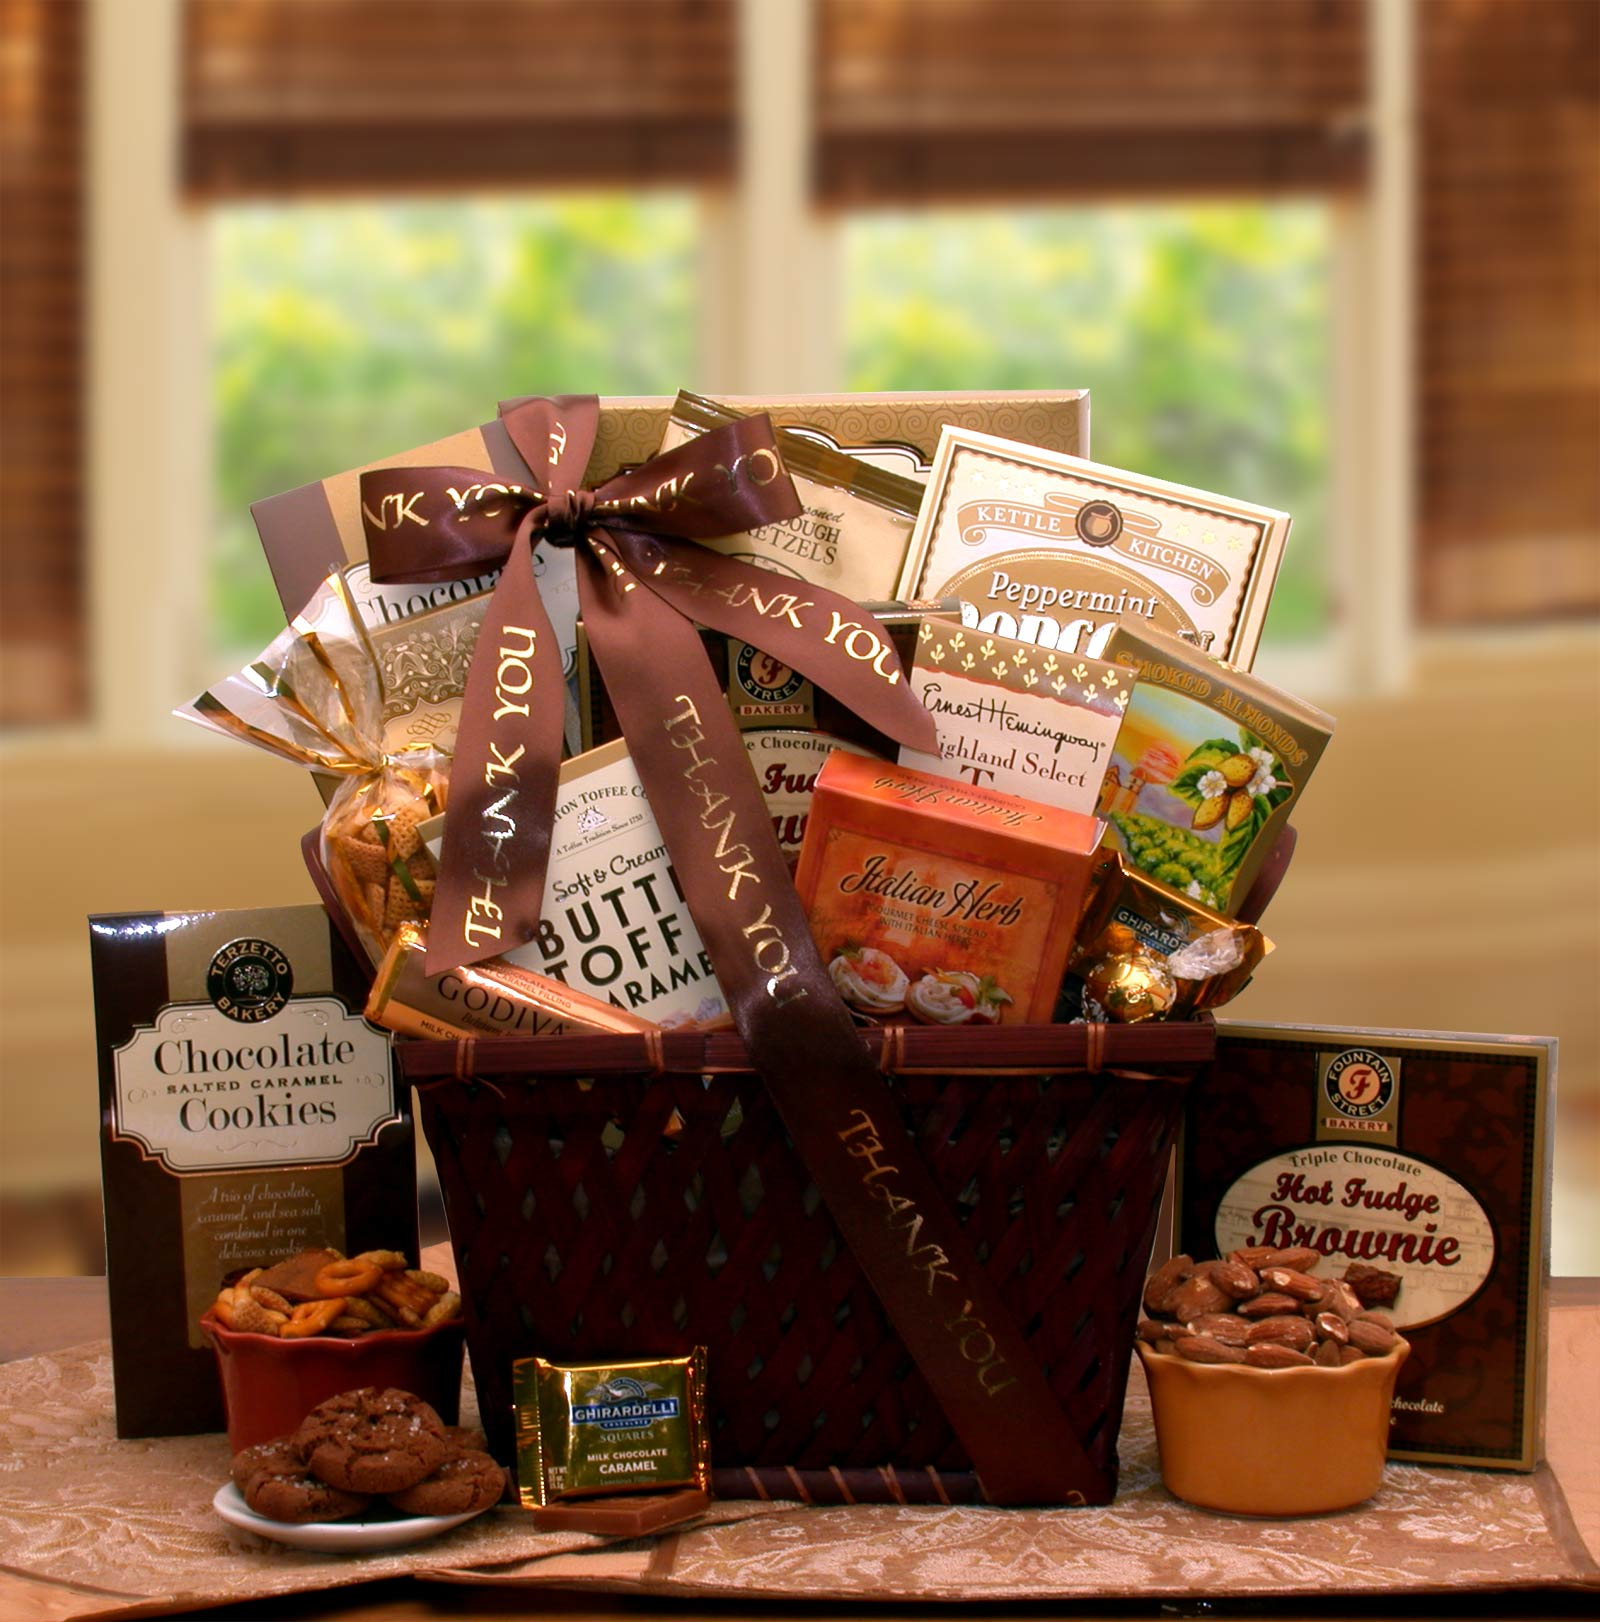 A-Very-Special-Thank-you-Gourmet-Gift-BasketGift Basket - Gourmet Basket